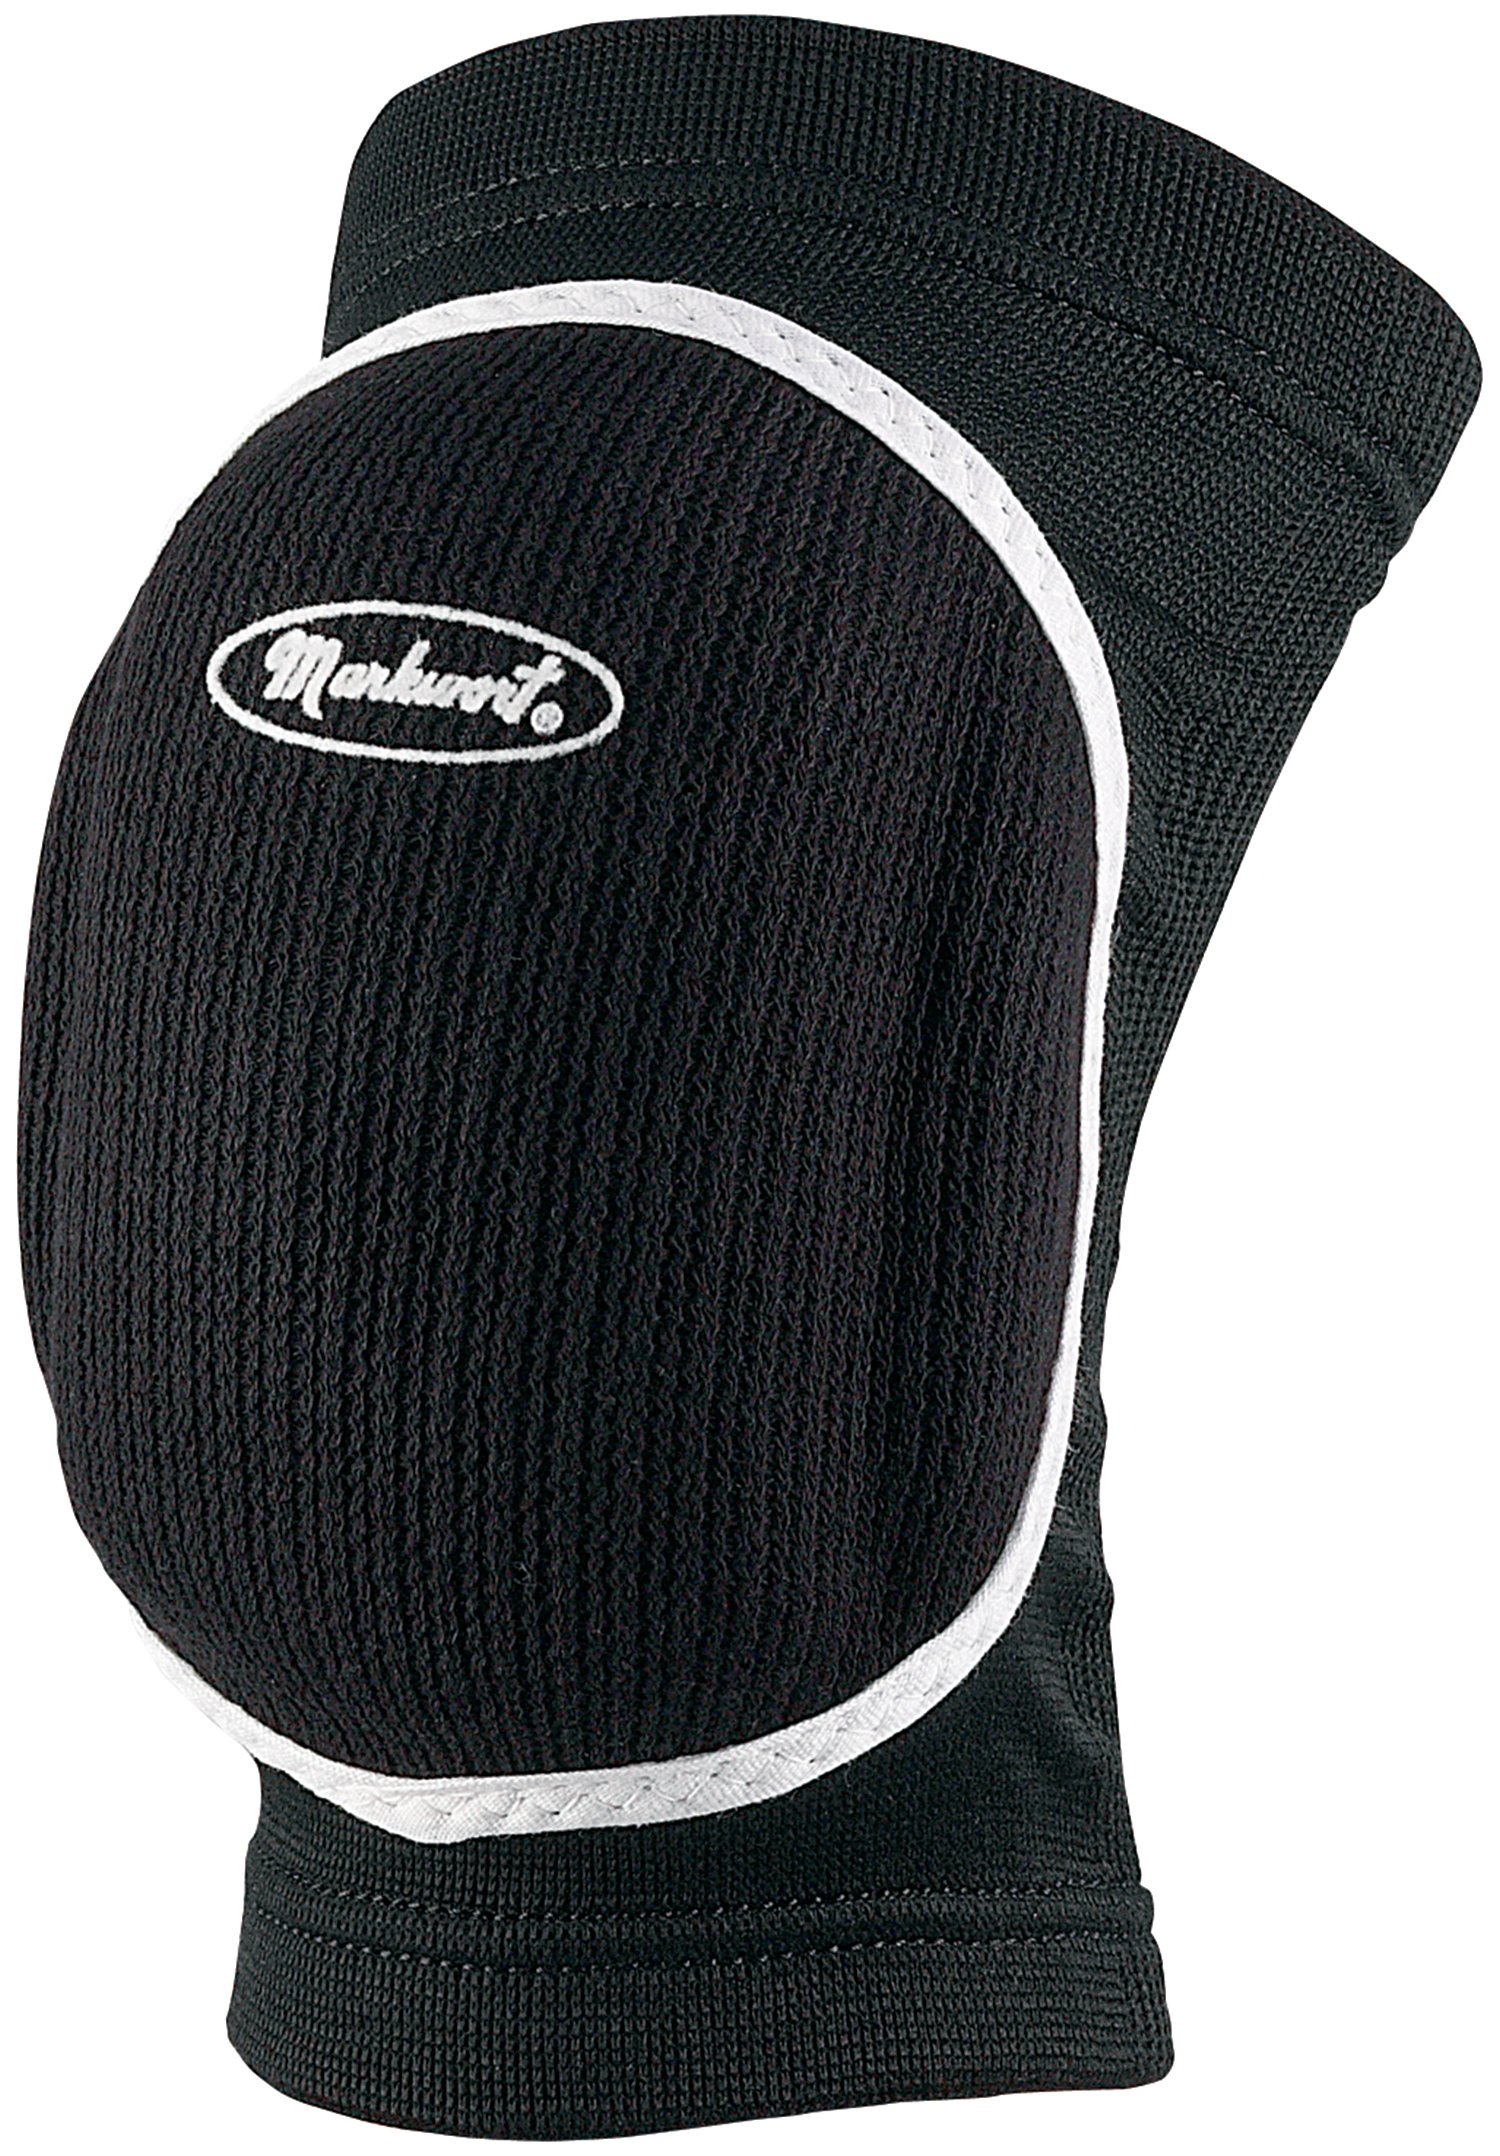 Markwort Volleyball Bubble Knee Pads, Black, Medium